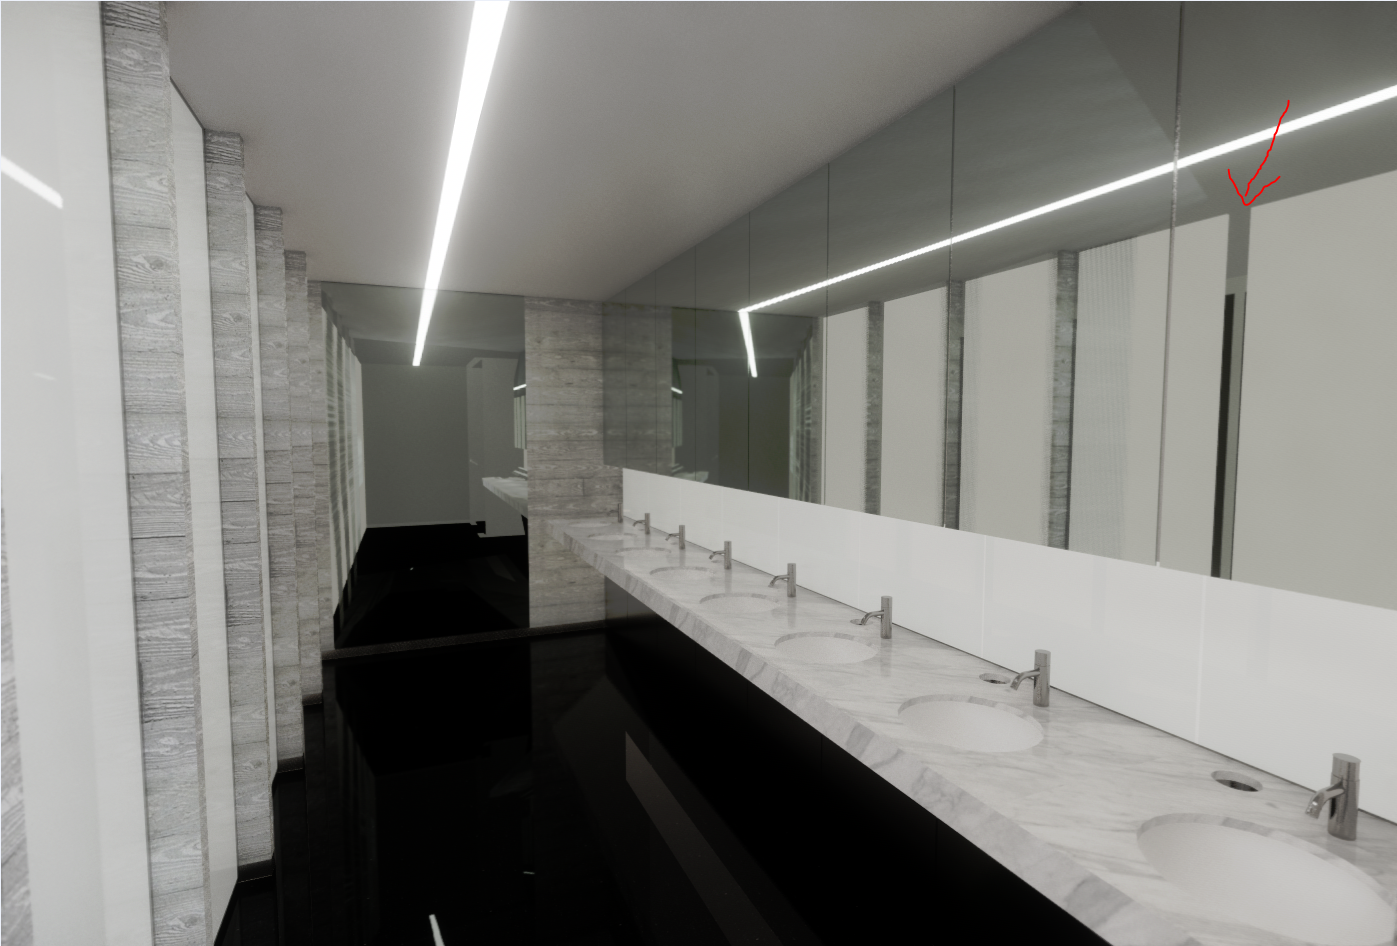 Missing Items in Mirror Reflection - Revit - Enscape